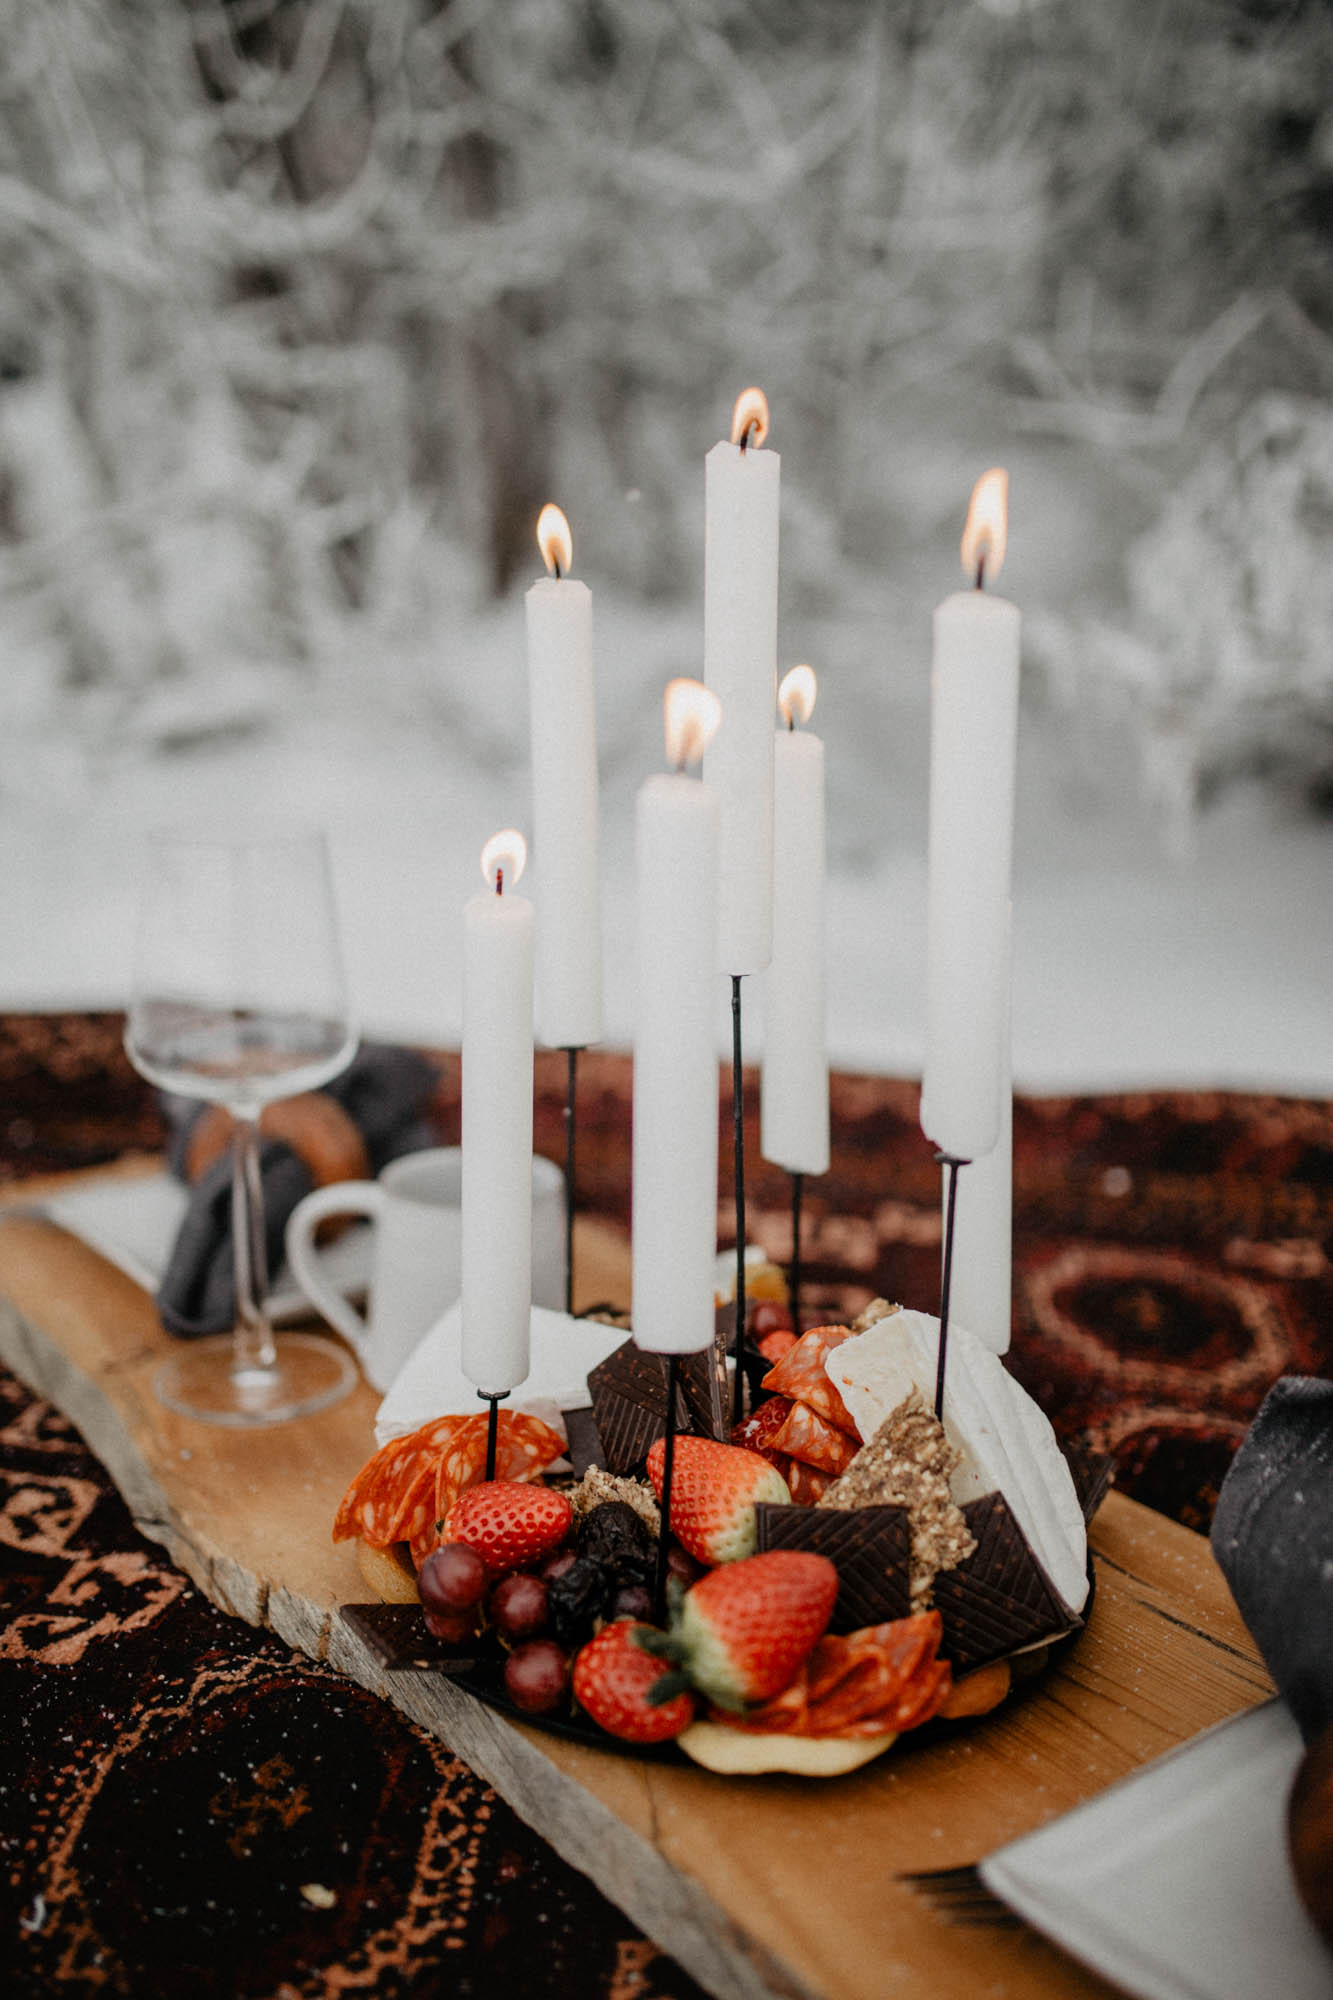 ashley_schulman_photography-winter_wedding_tampere-3.jpg